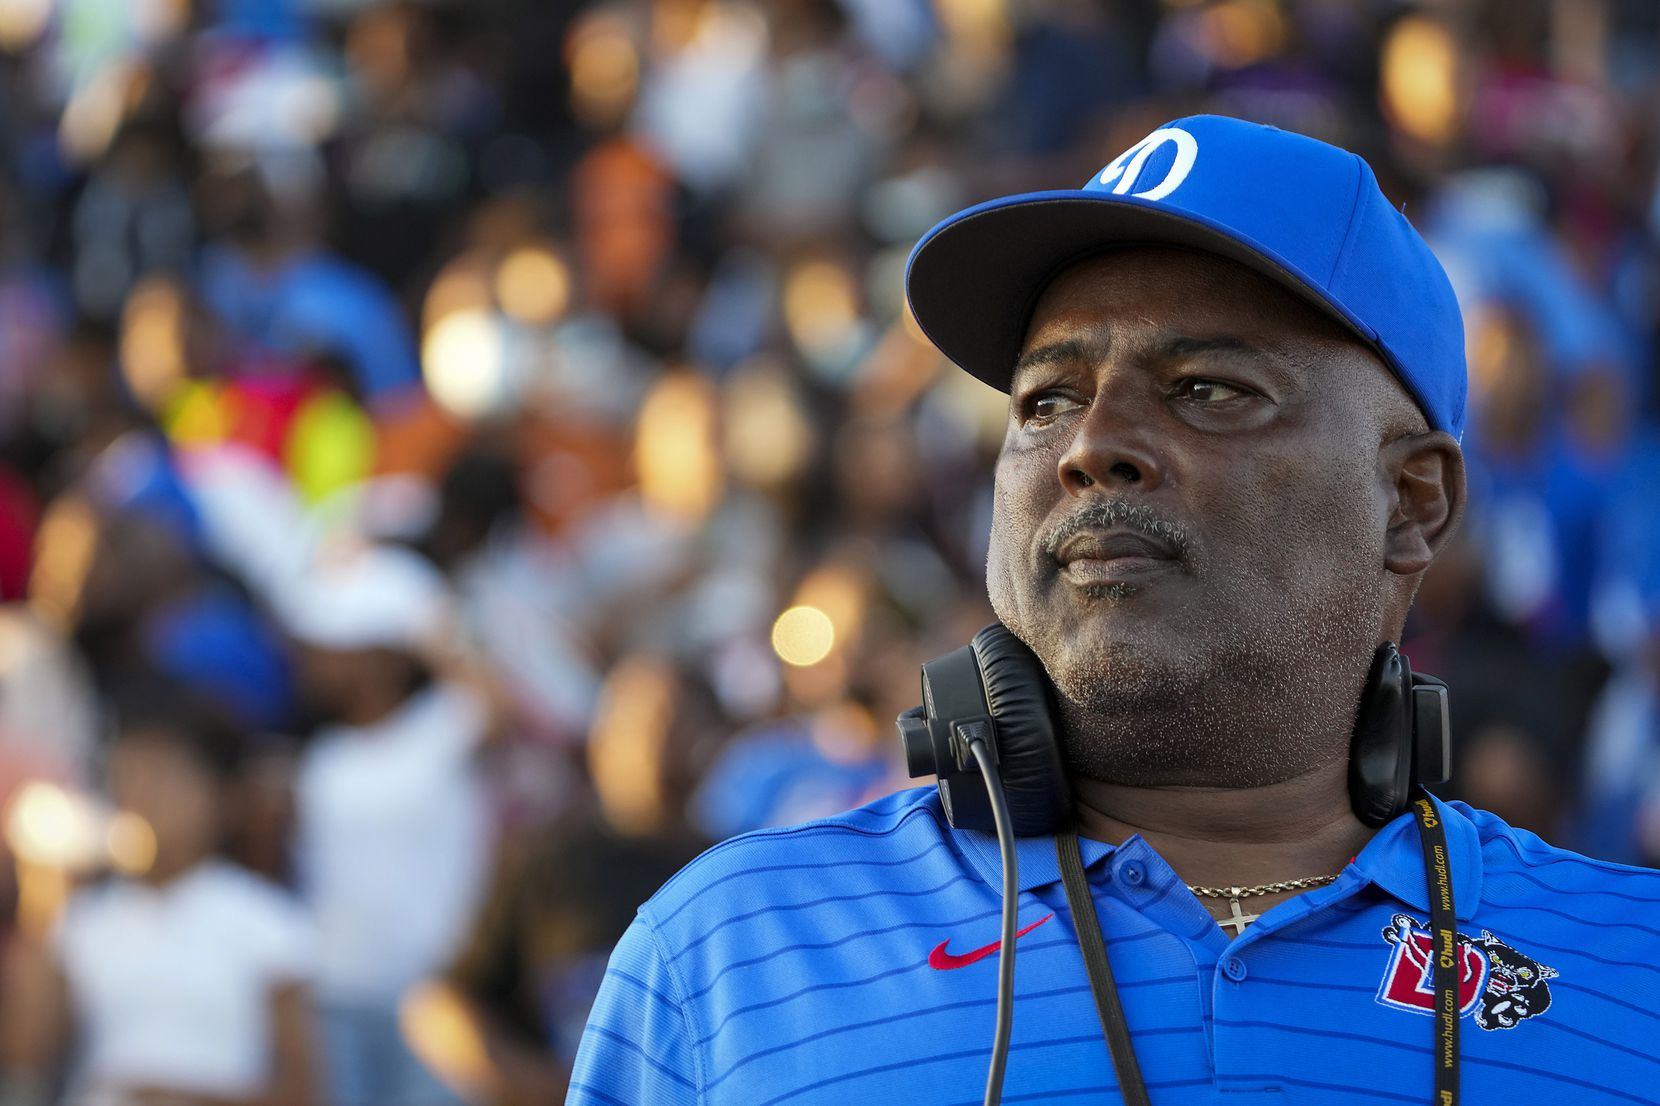 Duncanville head coach Reginald Samples watches his team take the field to face Mater Dei in a high school football game on Friday, Aug. 27, 2021, in Duncanville.